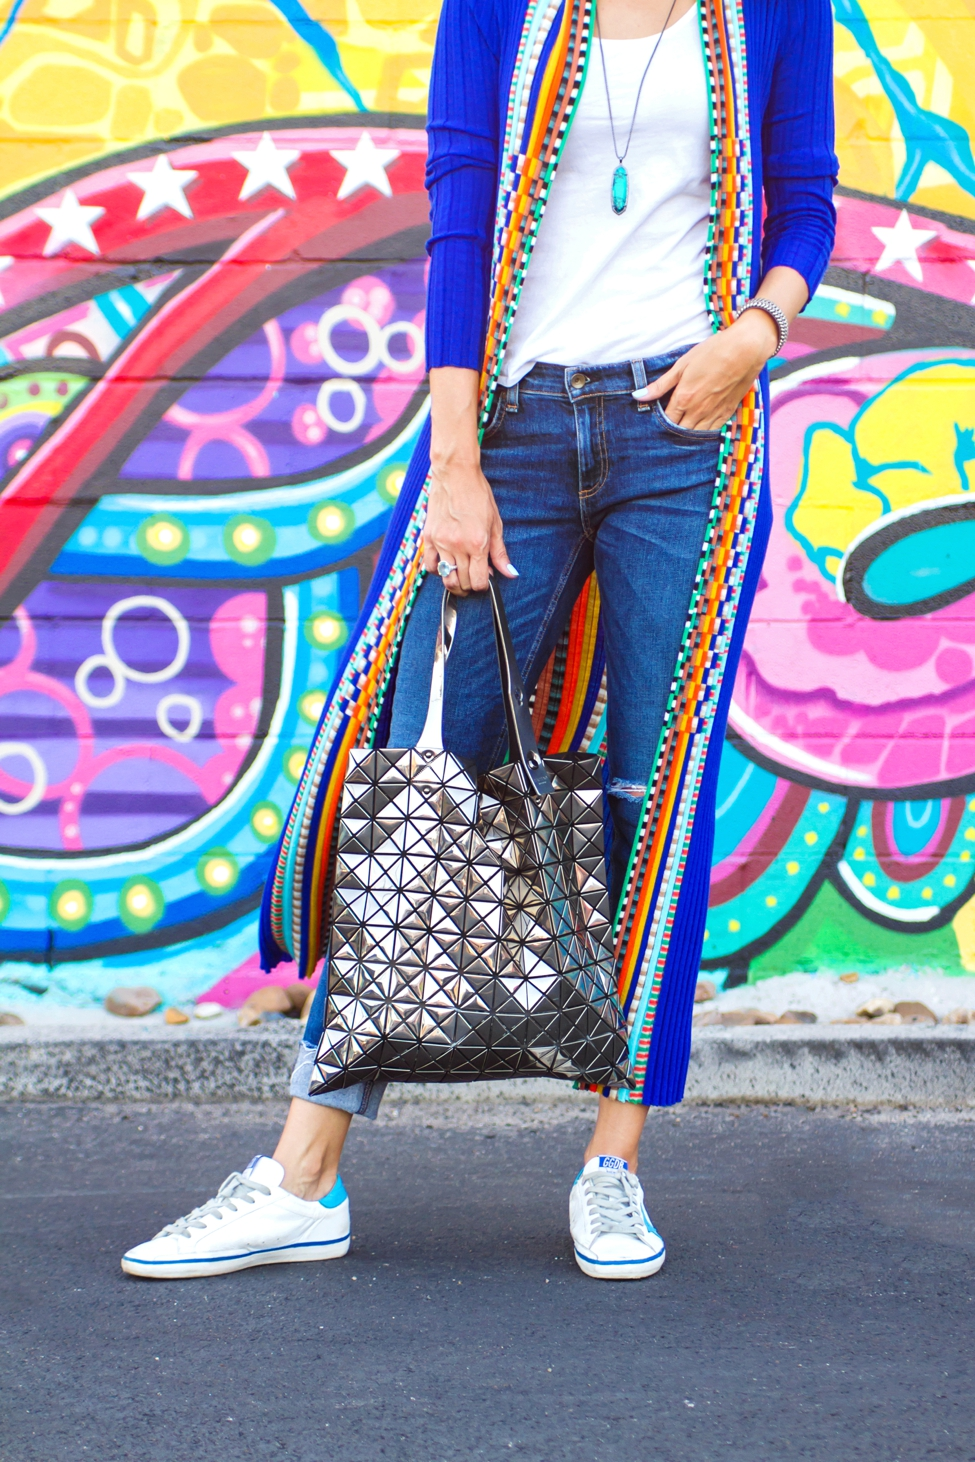 292d59ee2ea1 ... Wear Where Well Missoni cardigan Golden Goose sneakers Bao Bao Issey  Miyake bag 0003 ...